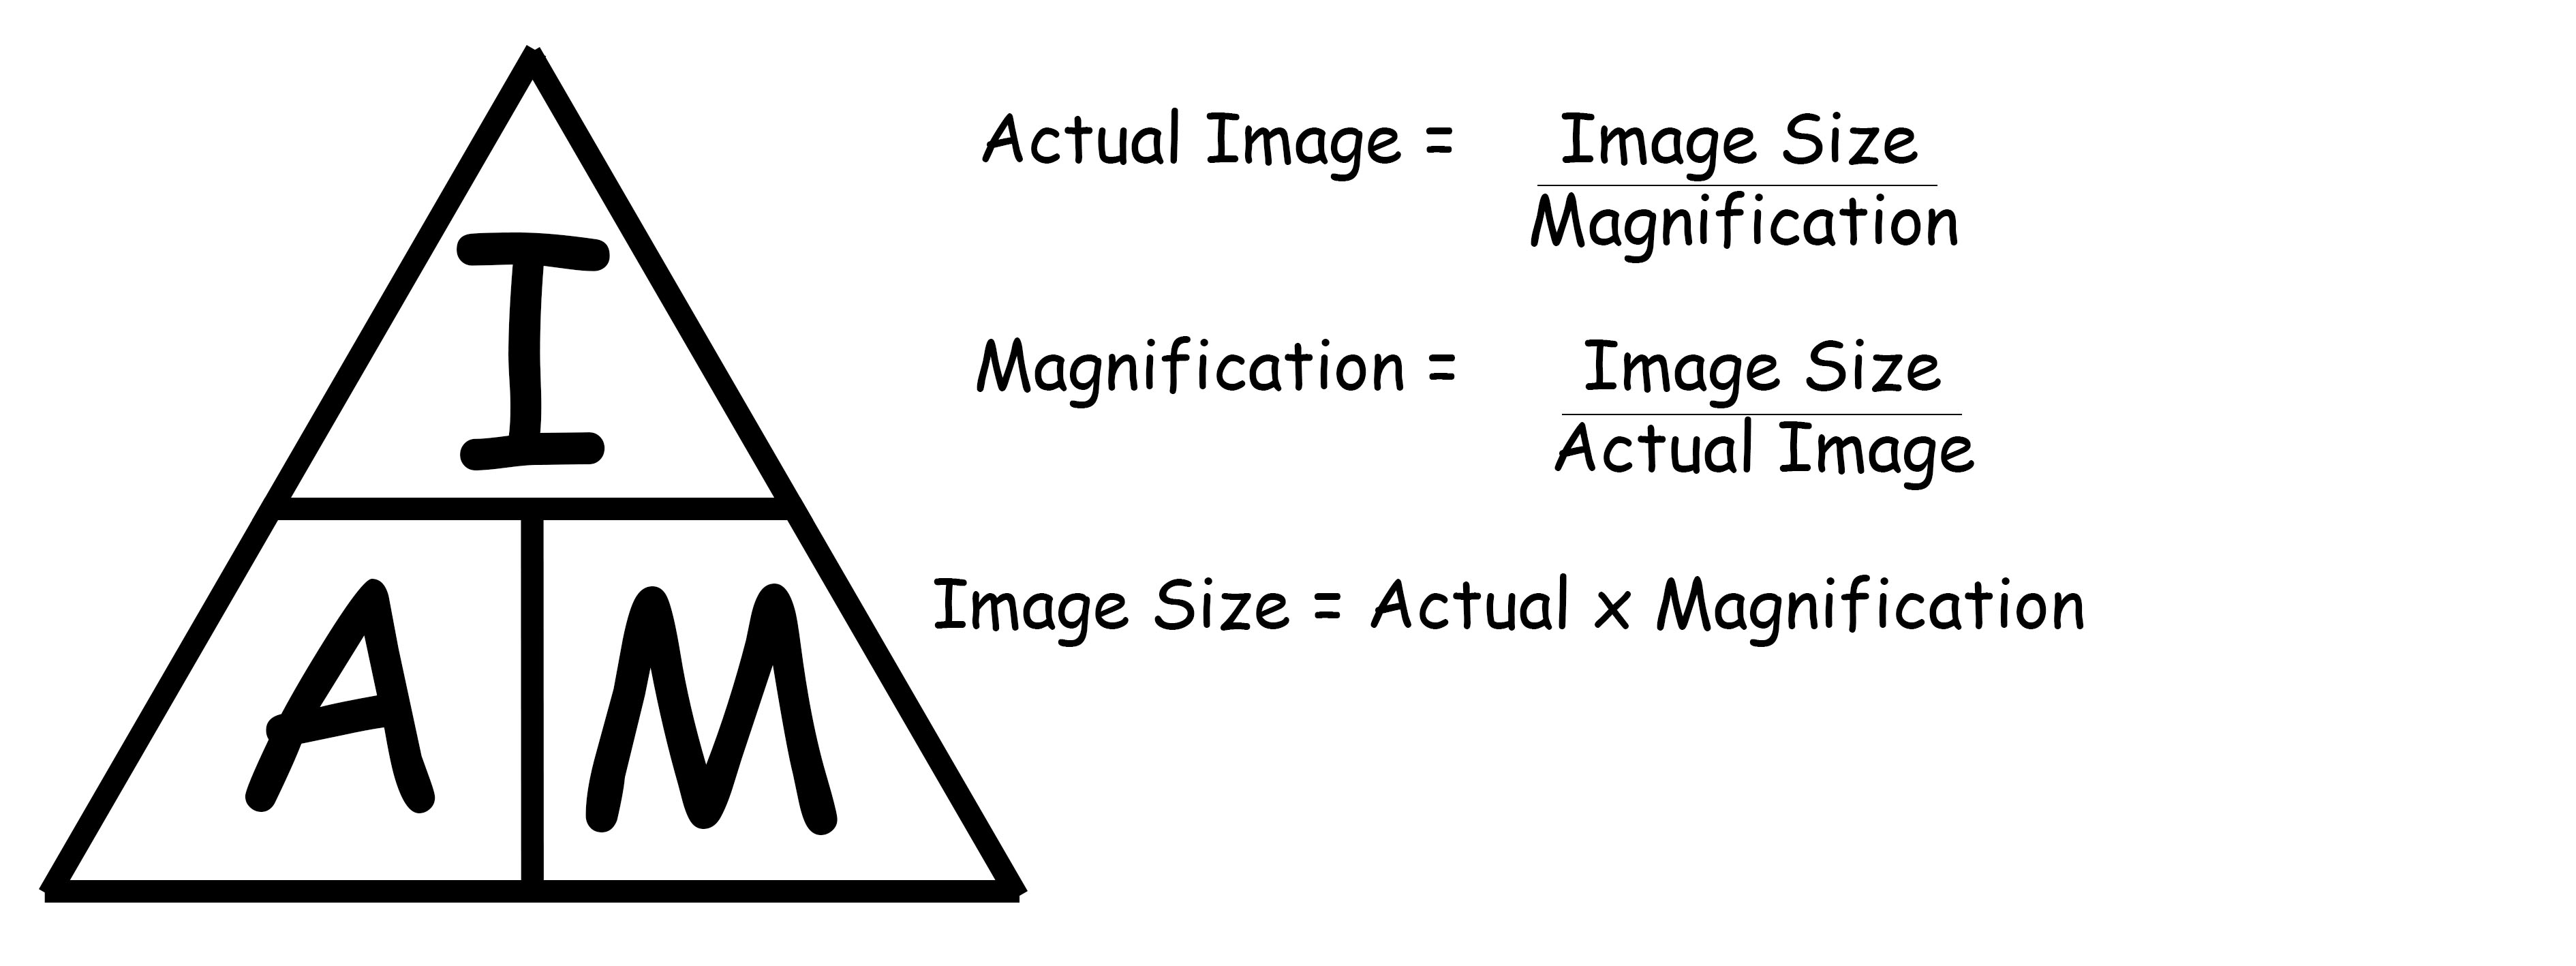 Magnification Triangle.jpg